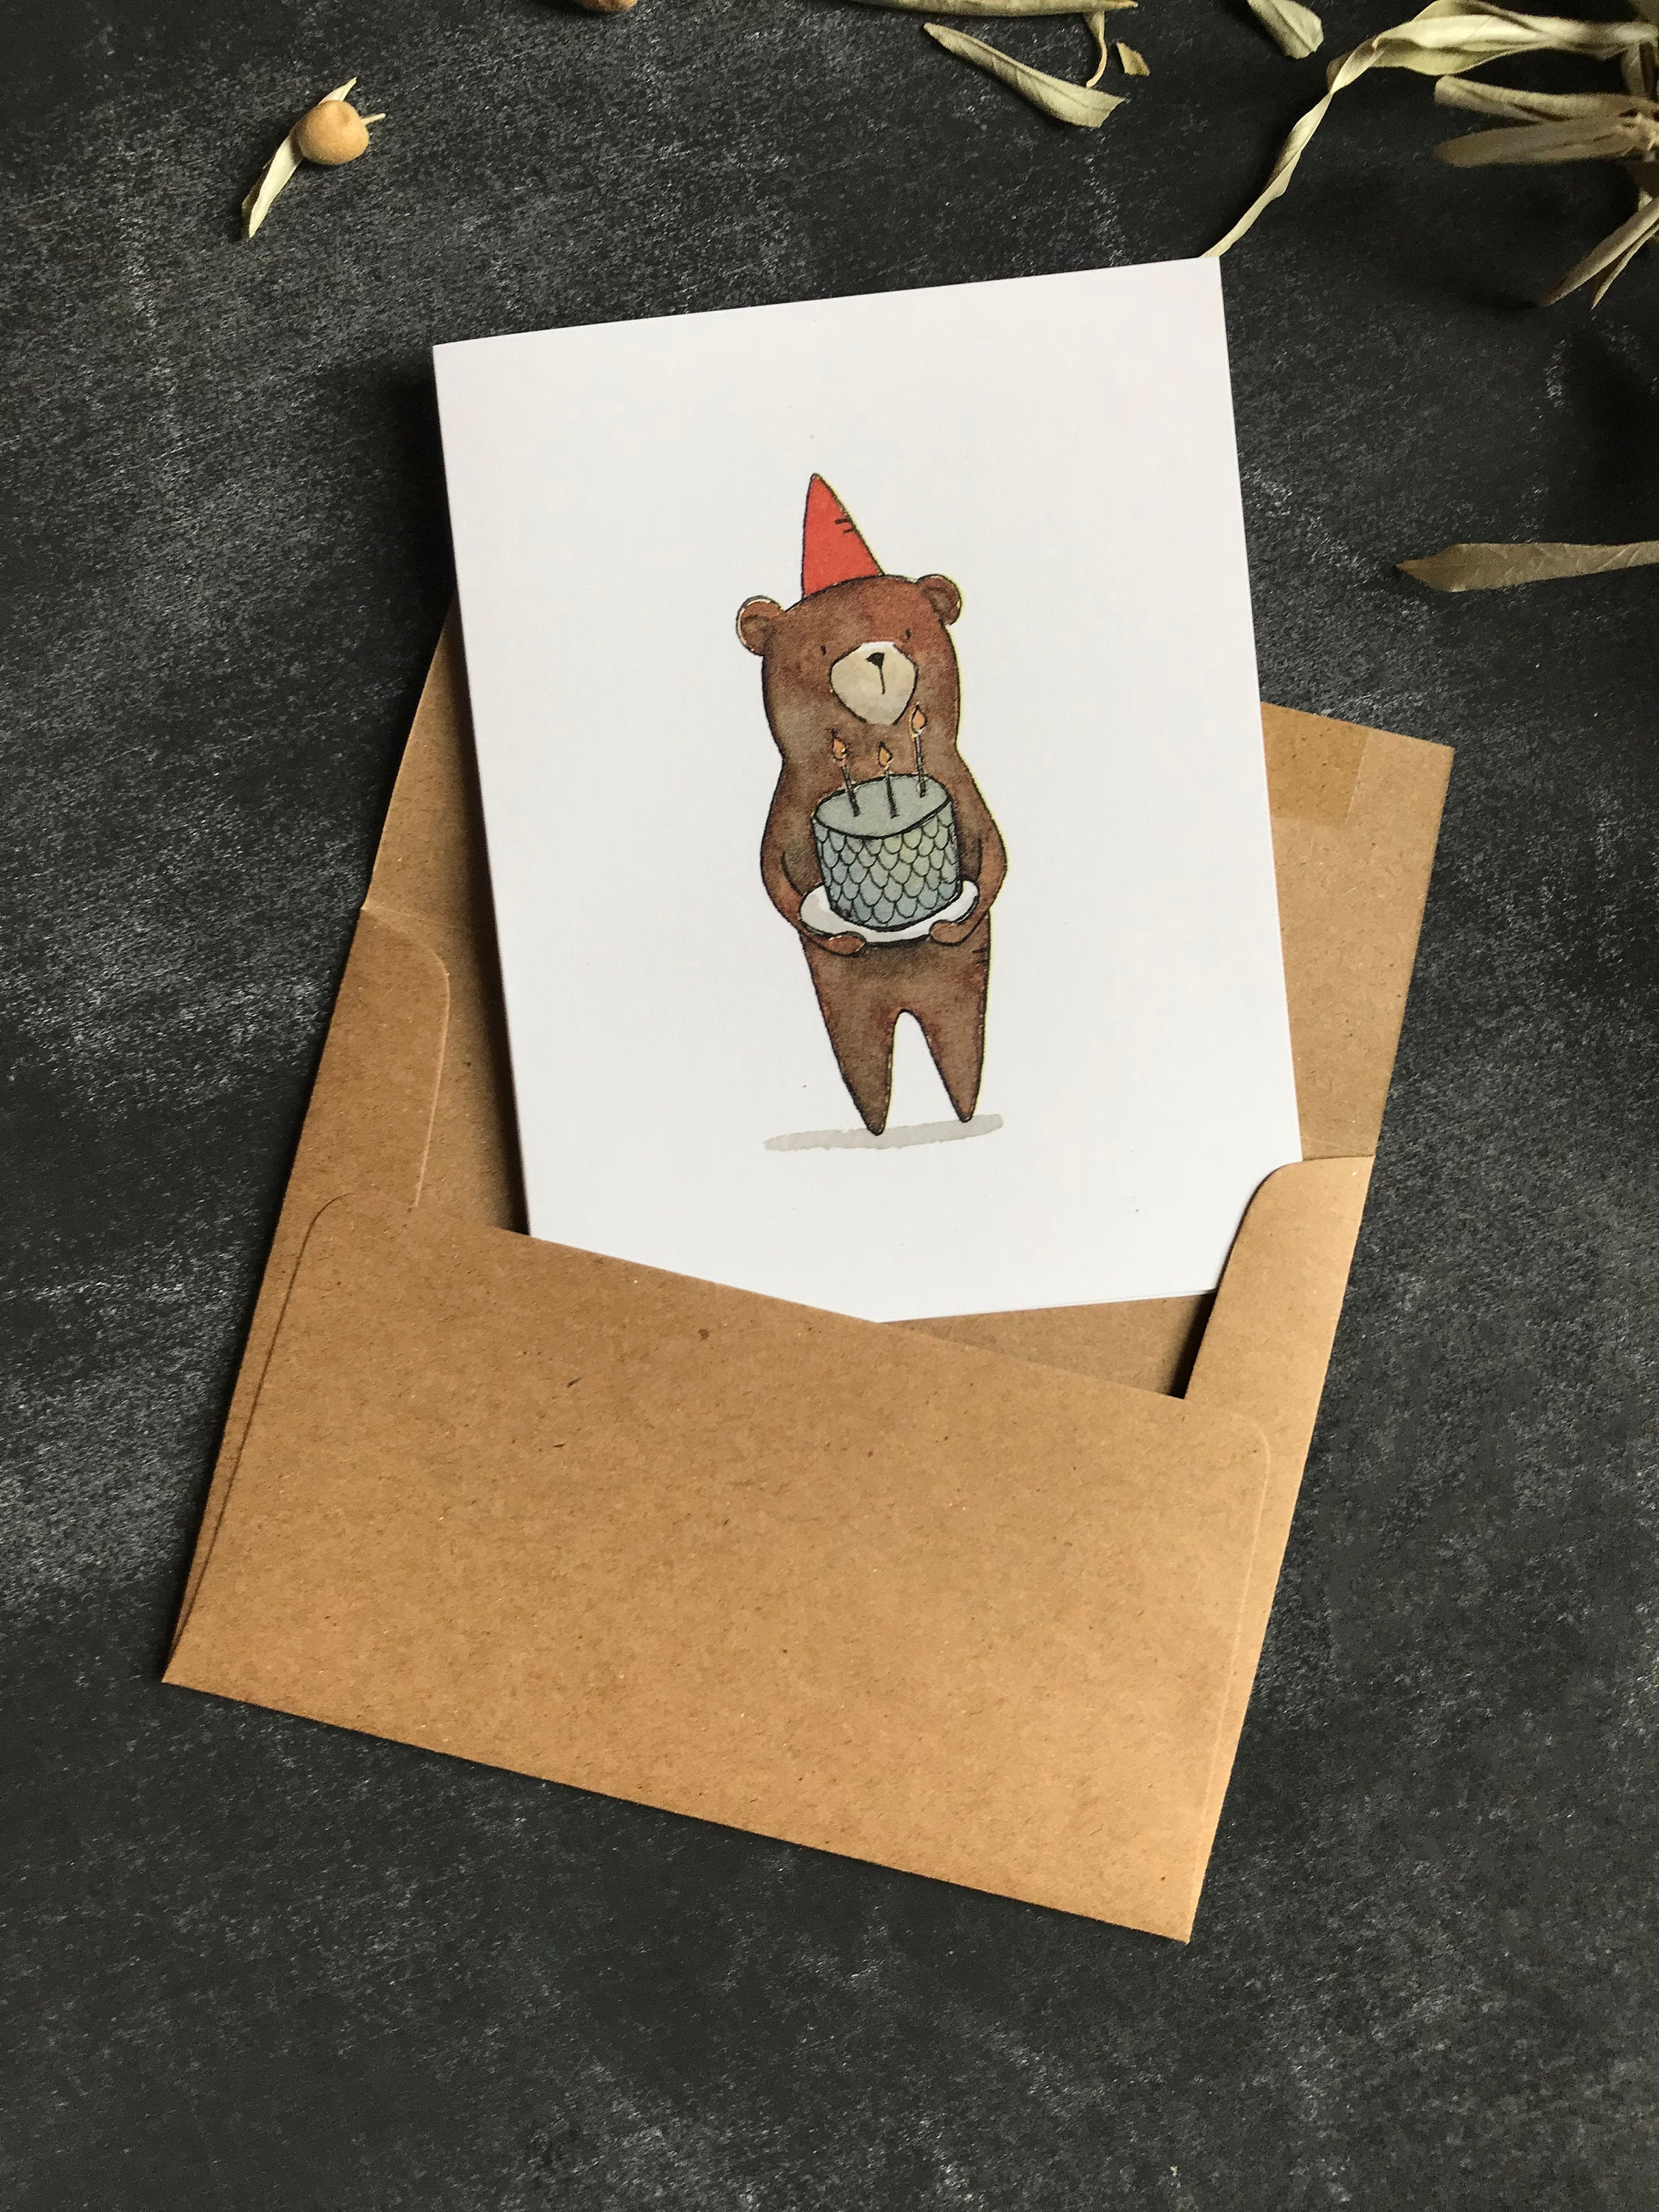 Happy Birthday Card Bear - Greeting Card - Note Card - Woodland Birthday - Watercolor Card - Whimsical Card